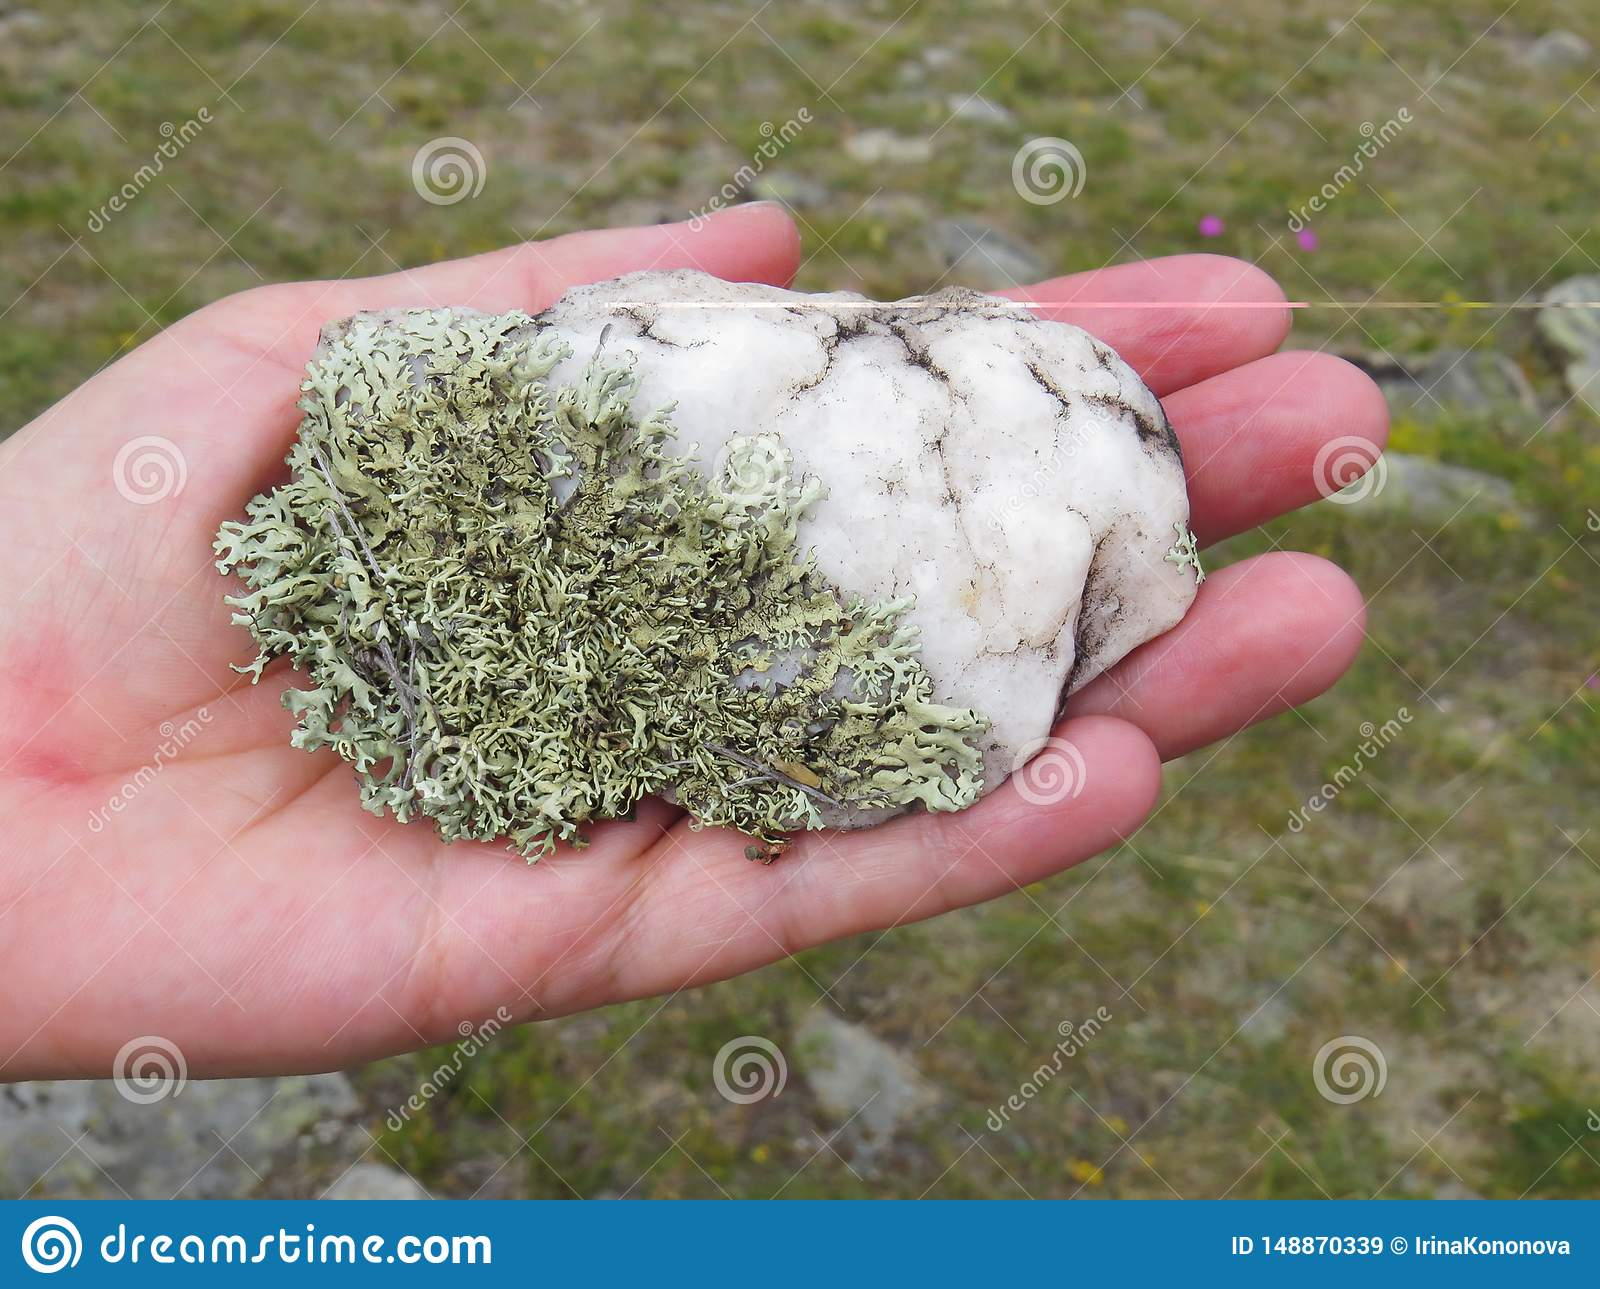 Green lichen on white quartzite in the palm. Close-up. Nature of Baikal